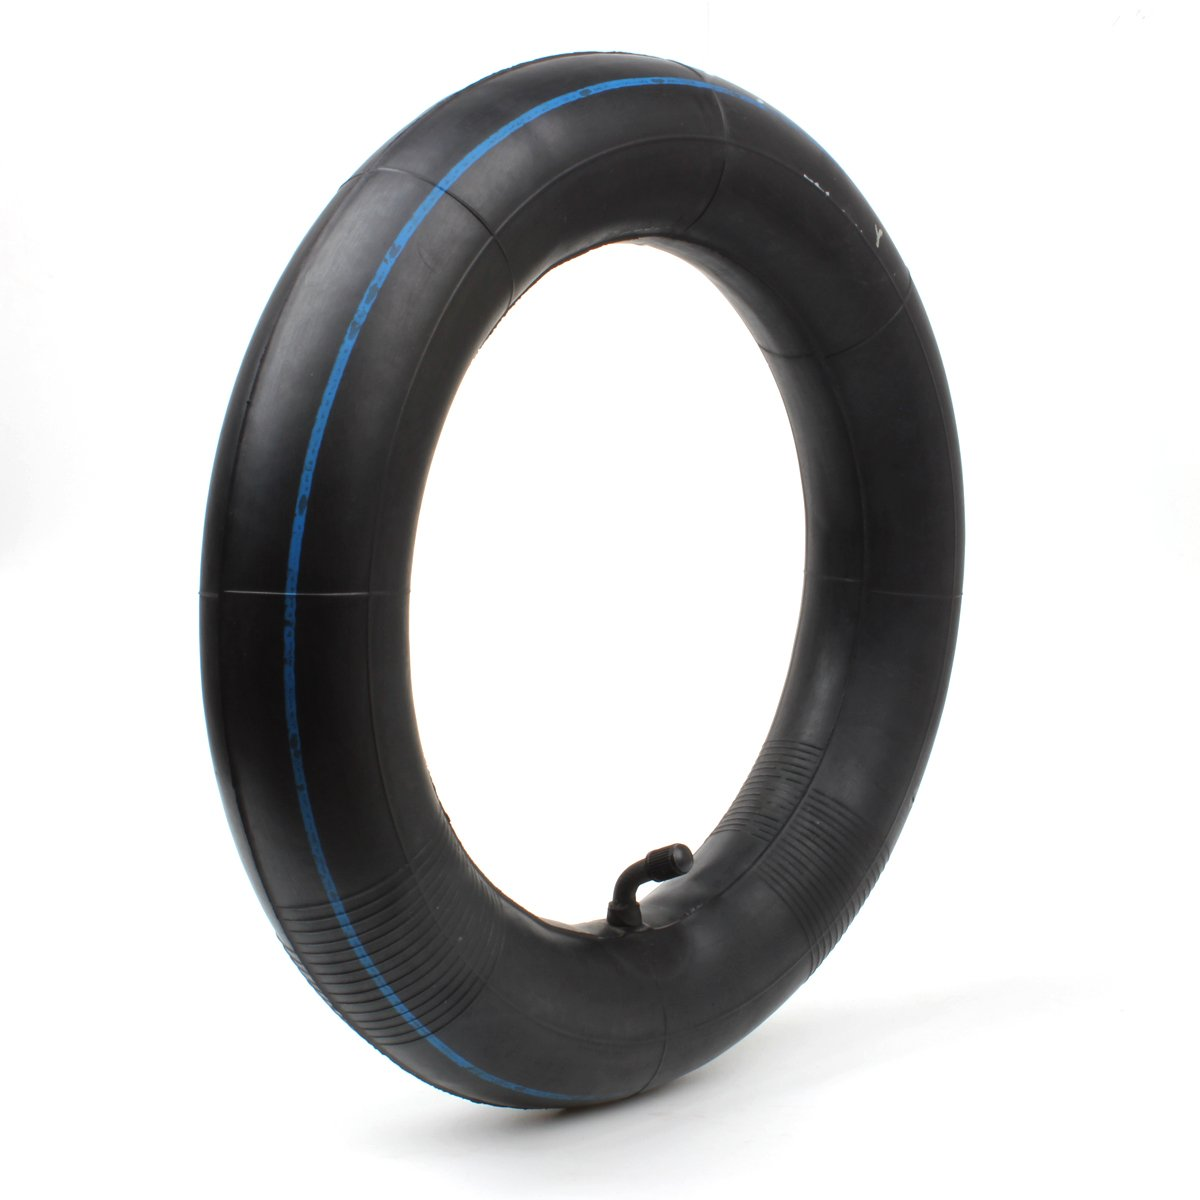 Wingsmoto 3.25/3.00-8 Inner Tube with TR-87 Angled Stem for 8 Inch Wheelbarrow Scooters Mini Chopper Tire Go Kart ATV